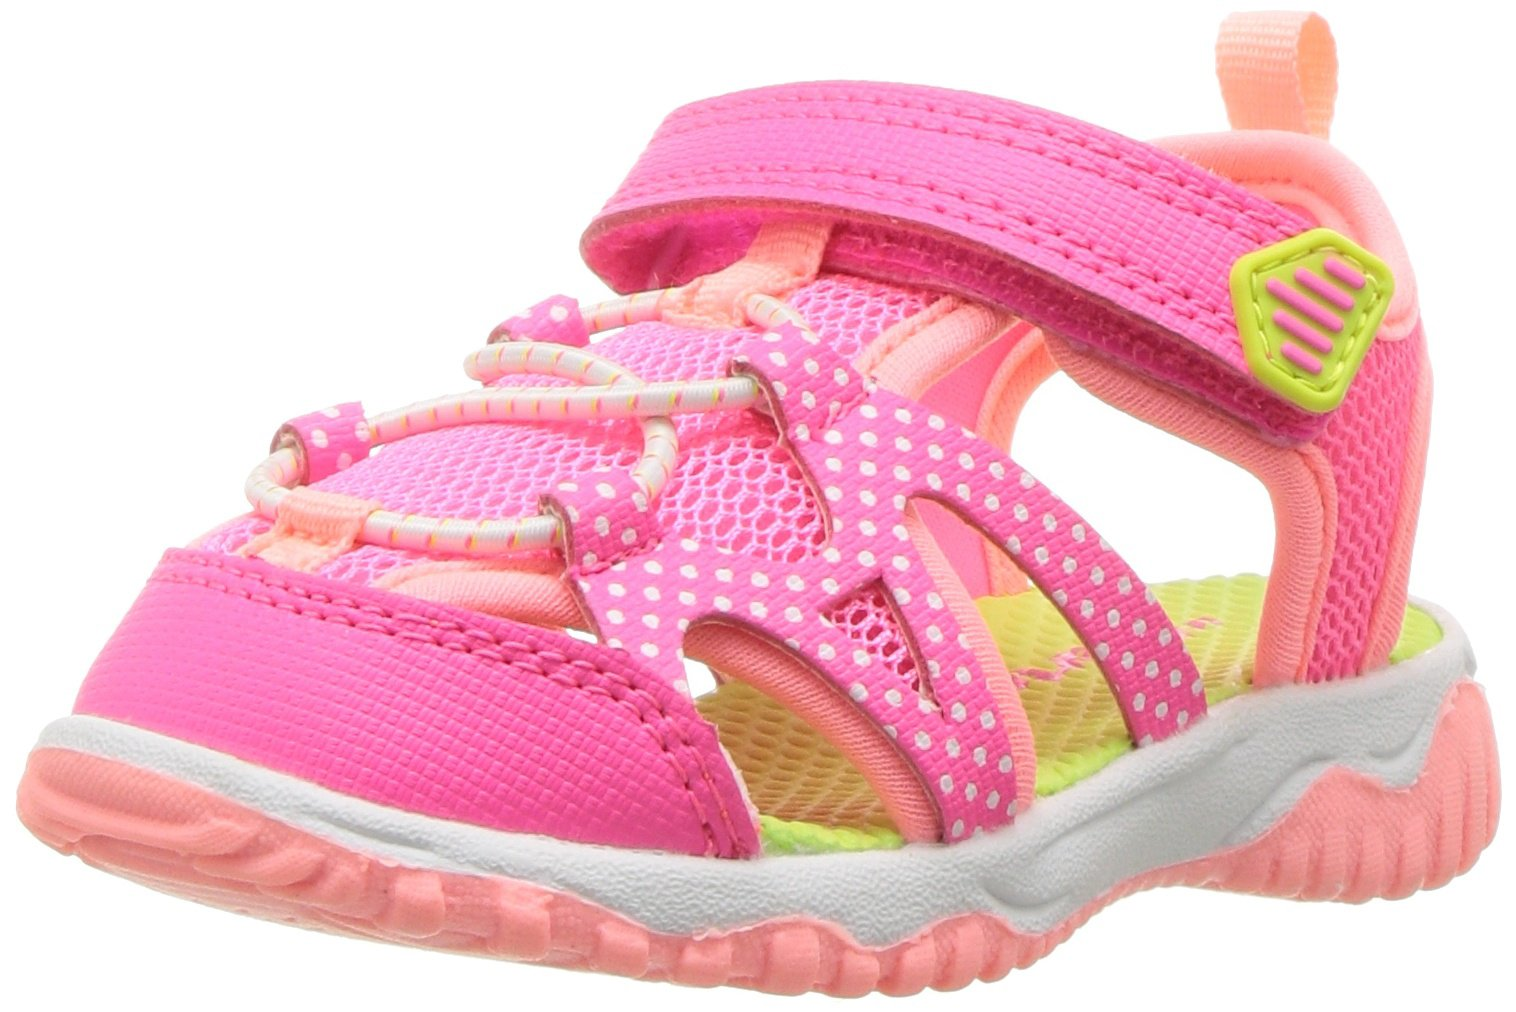 Carter's Baby Zyntec Boy's and Girl's Athletic Sport Sandal, Pink, 8 M US Toddler